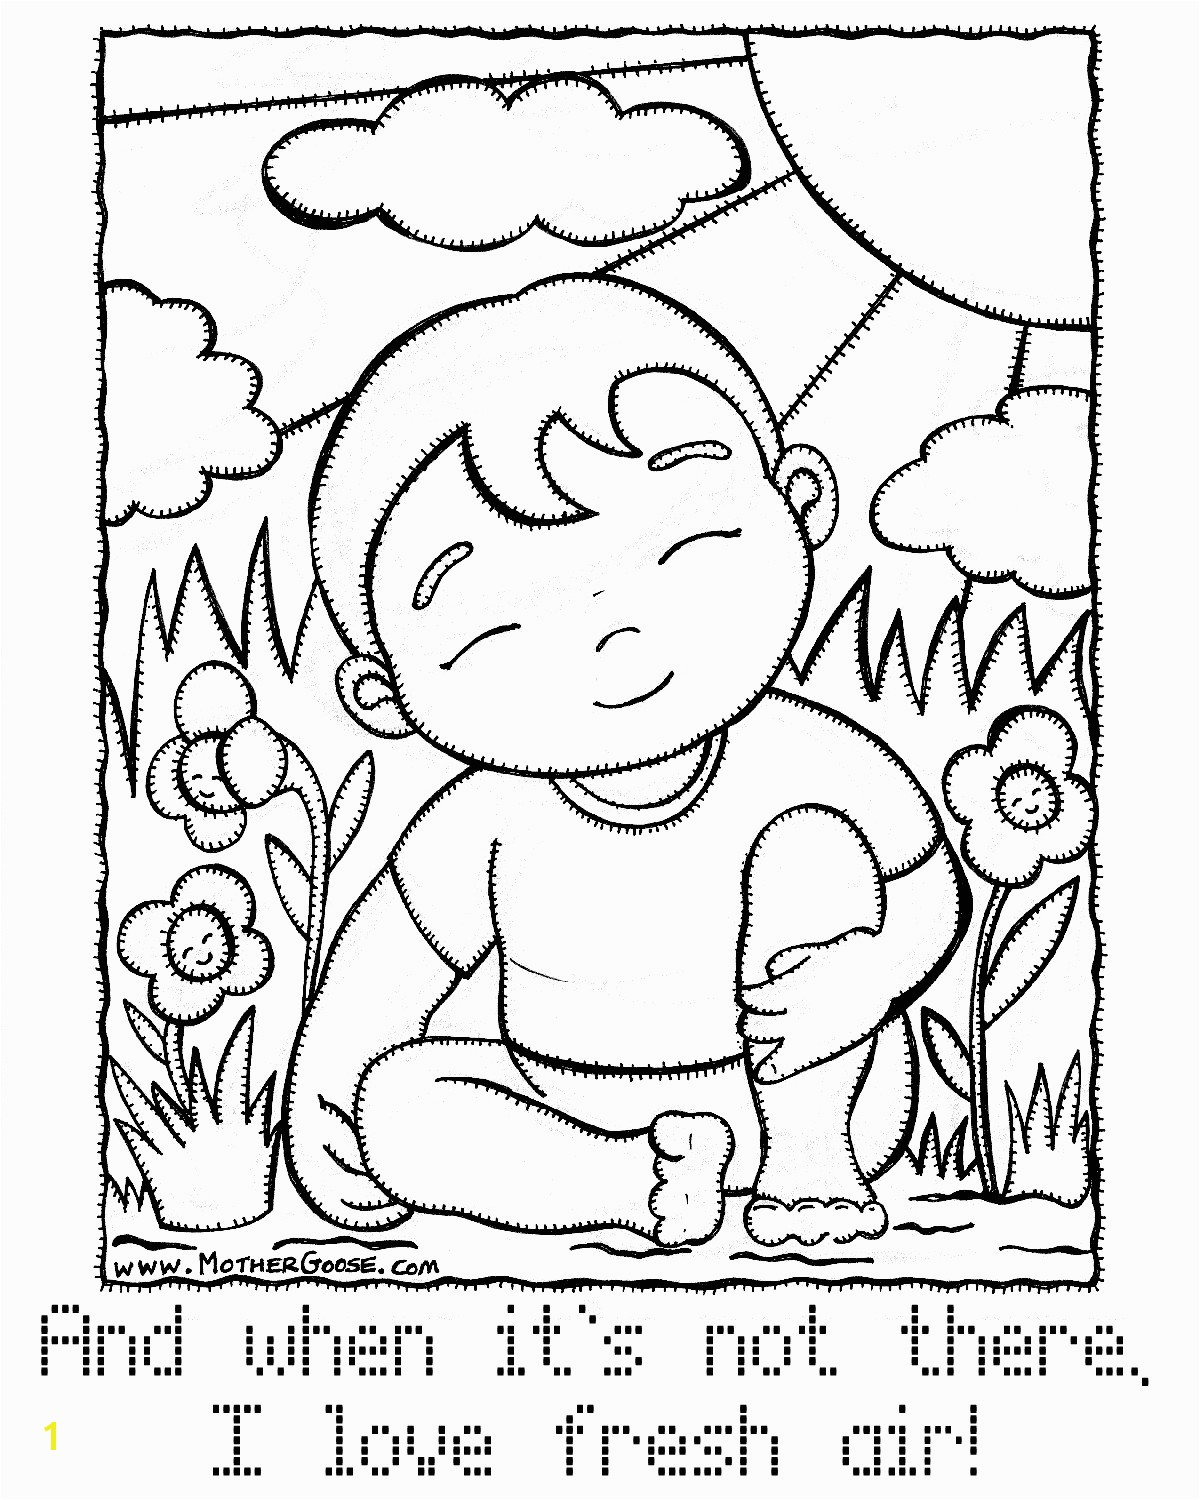 Refundable Little Miss Muffet Coloring Page 2056 Fresh puter Pages Gallery